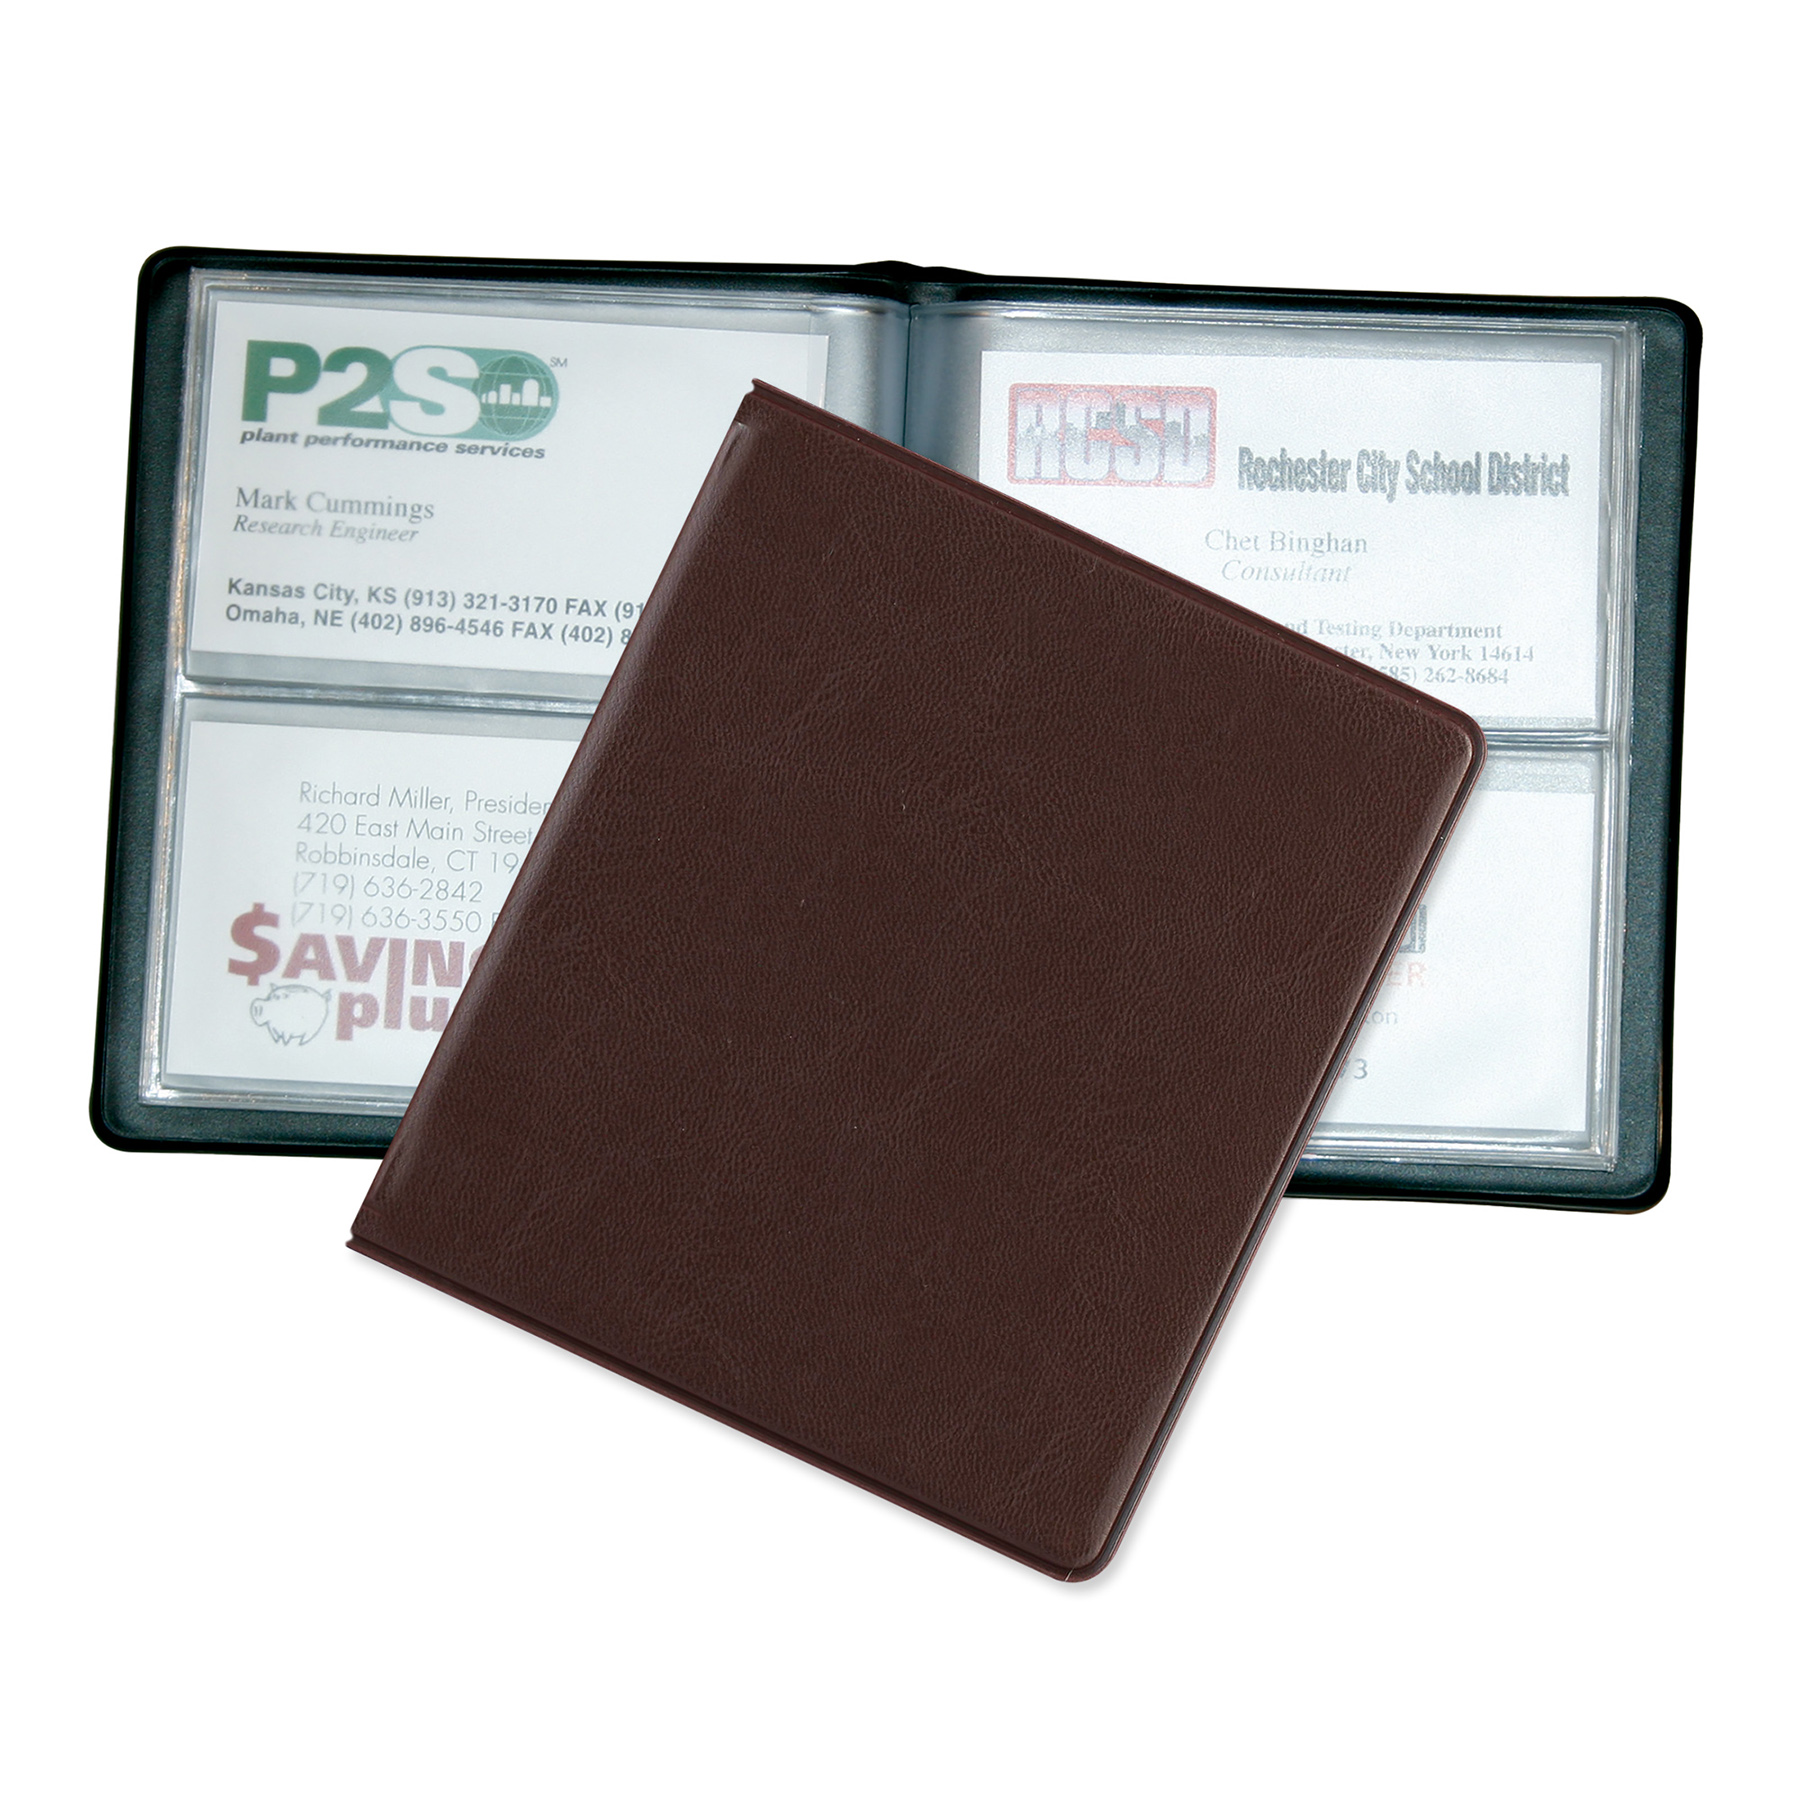 Executive Chocolate - PMS 4625